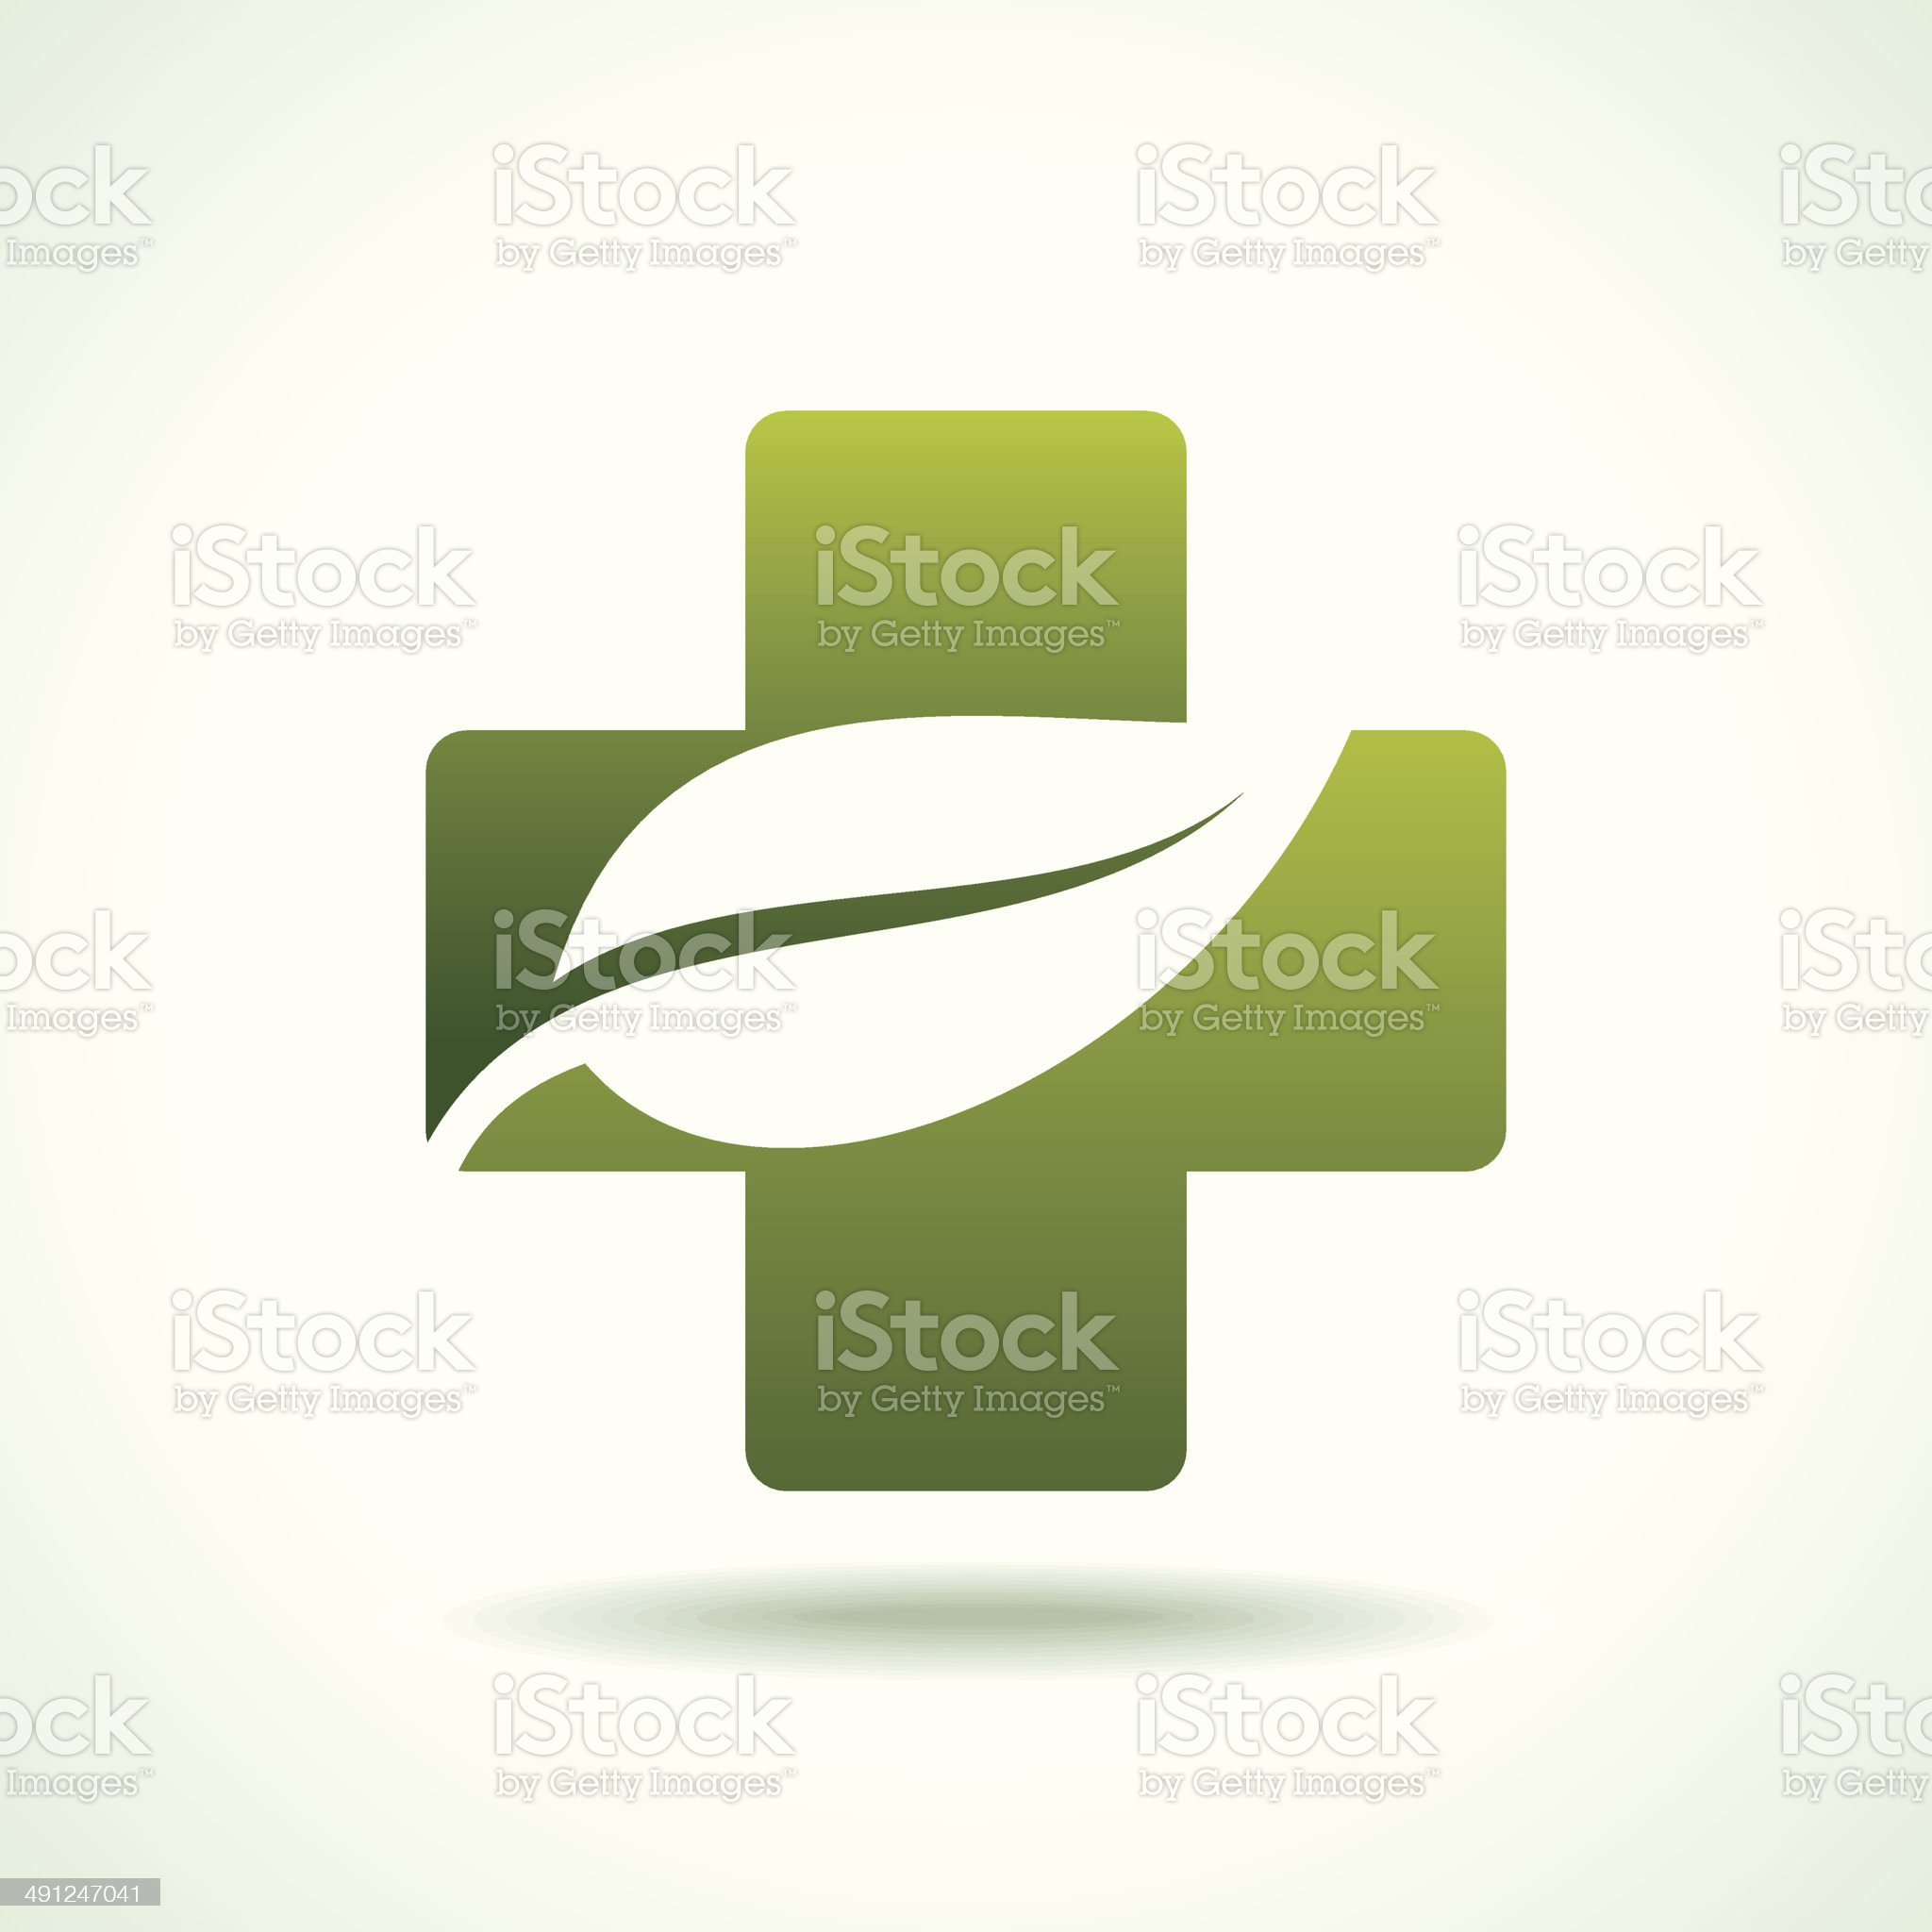 green health care Icon royalty-free stock vector art